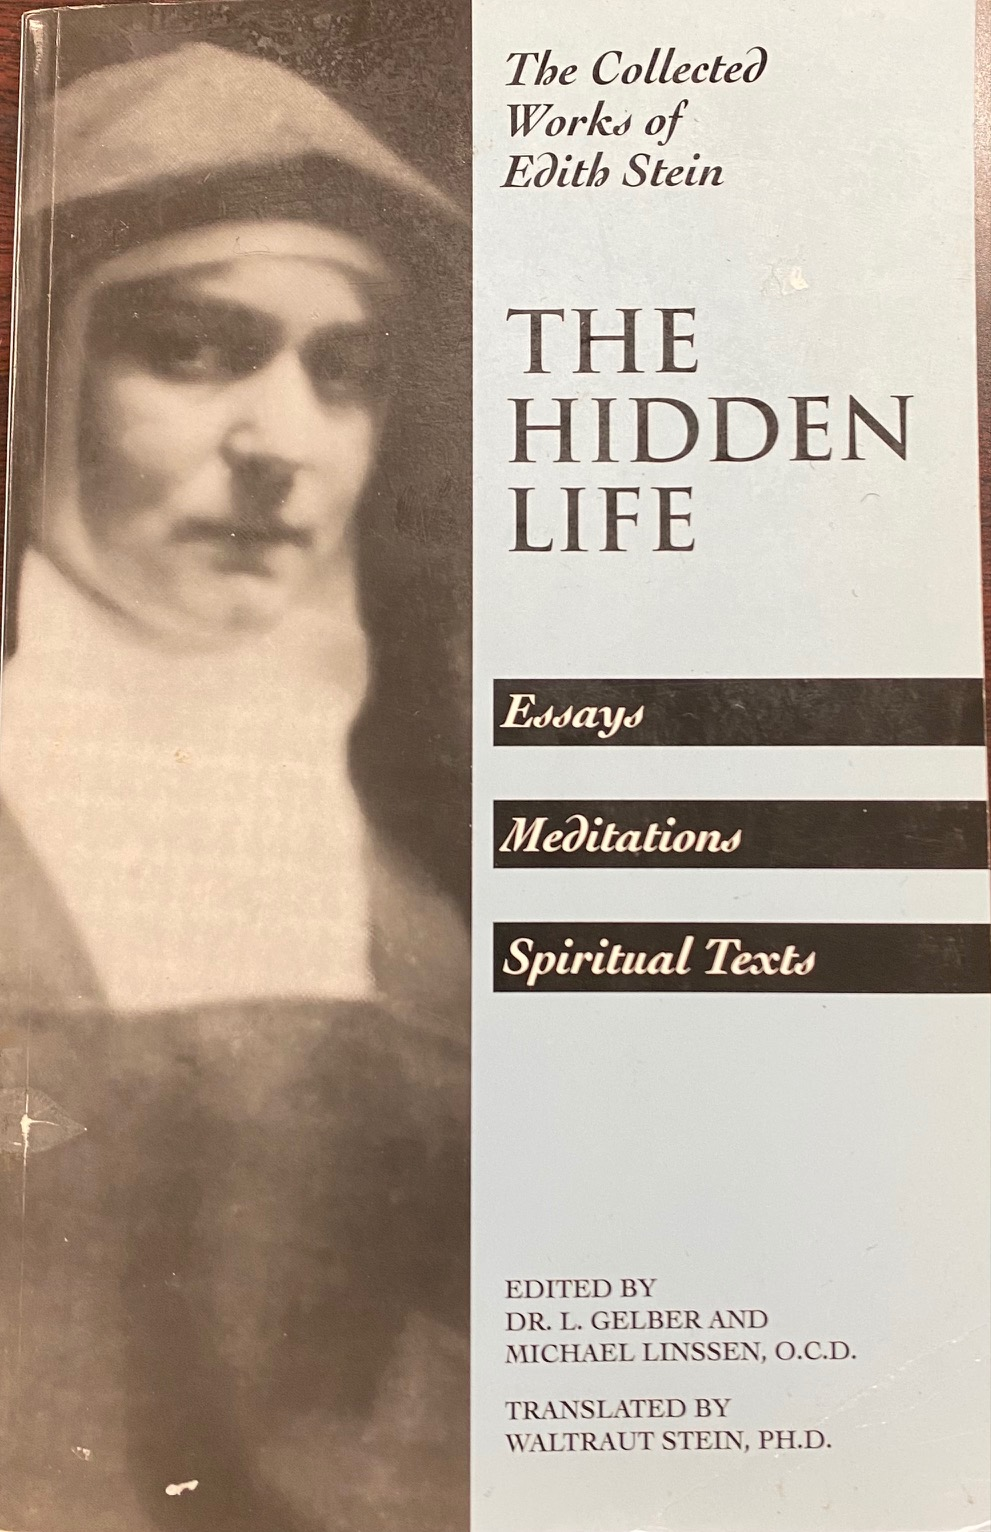 Image for The Hidden Life: Hagiographic Essays, Meditations, Spiritual Texts (The Collected Works of Edith Stein - Volume 4)